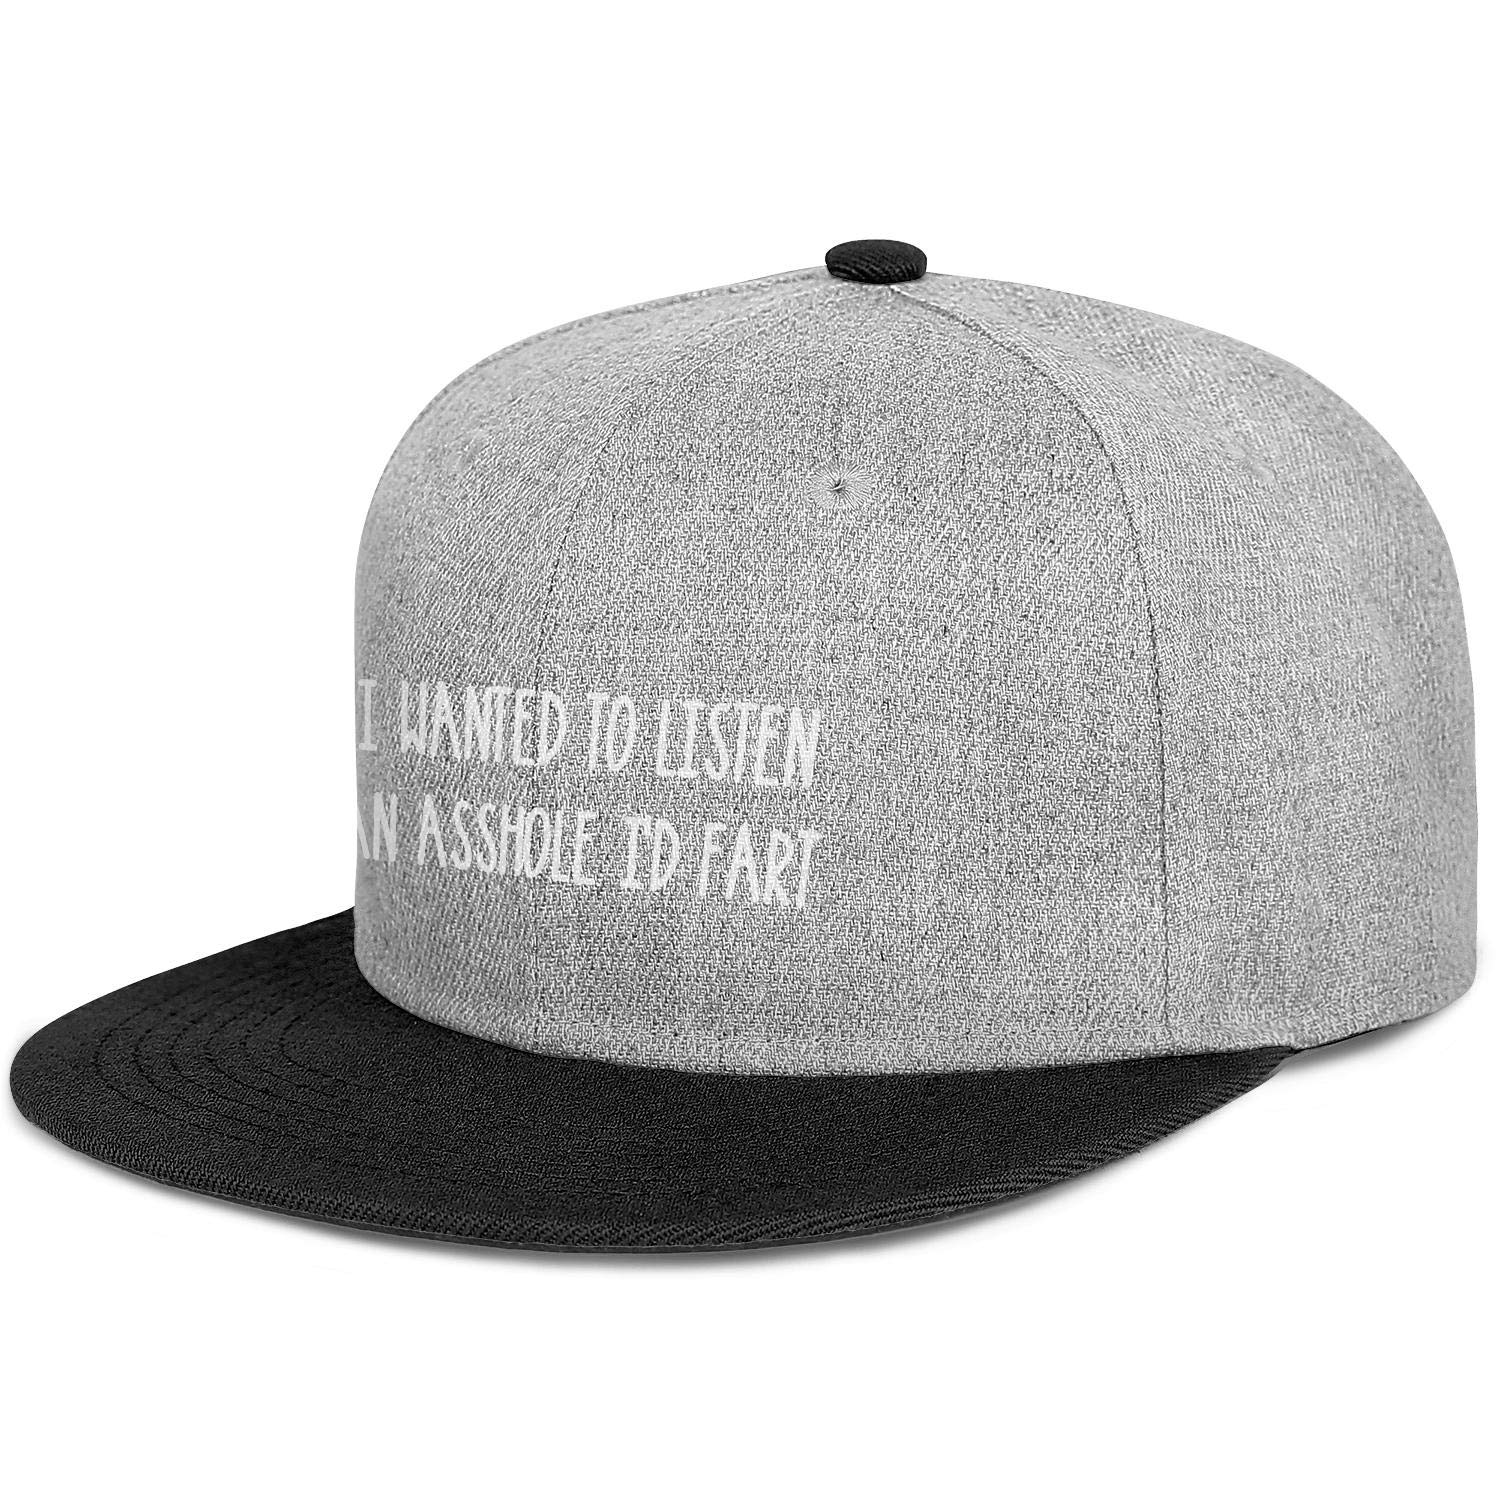 IF I Wanted to Listen to an Asshole Id Fart Men Women Wool Cool Cap Adjustable Snapback Beach Hat